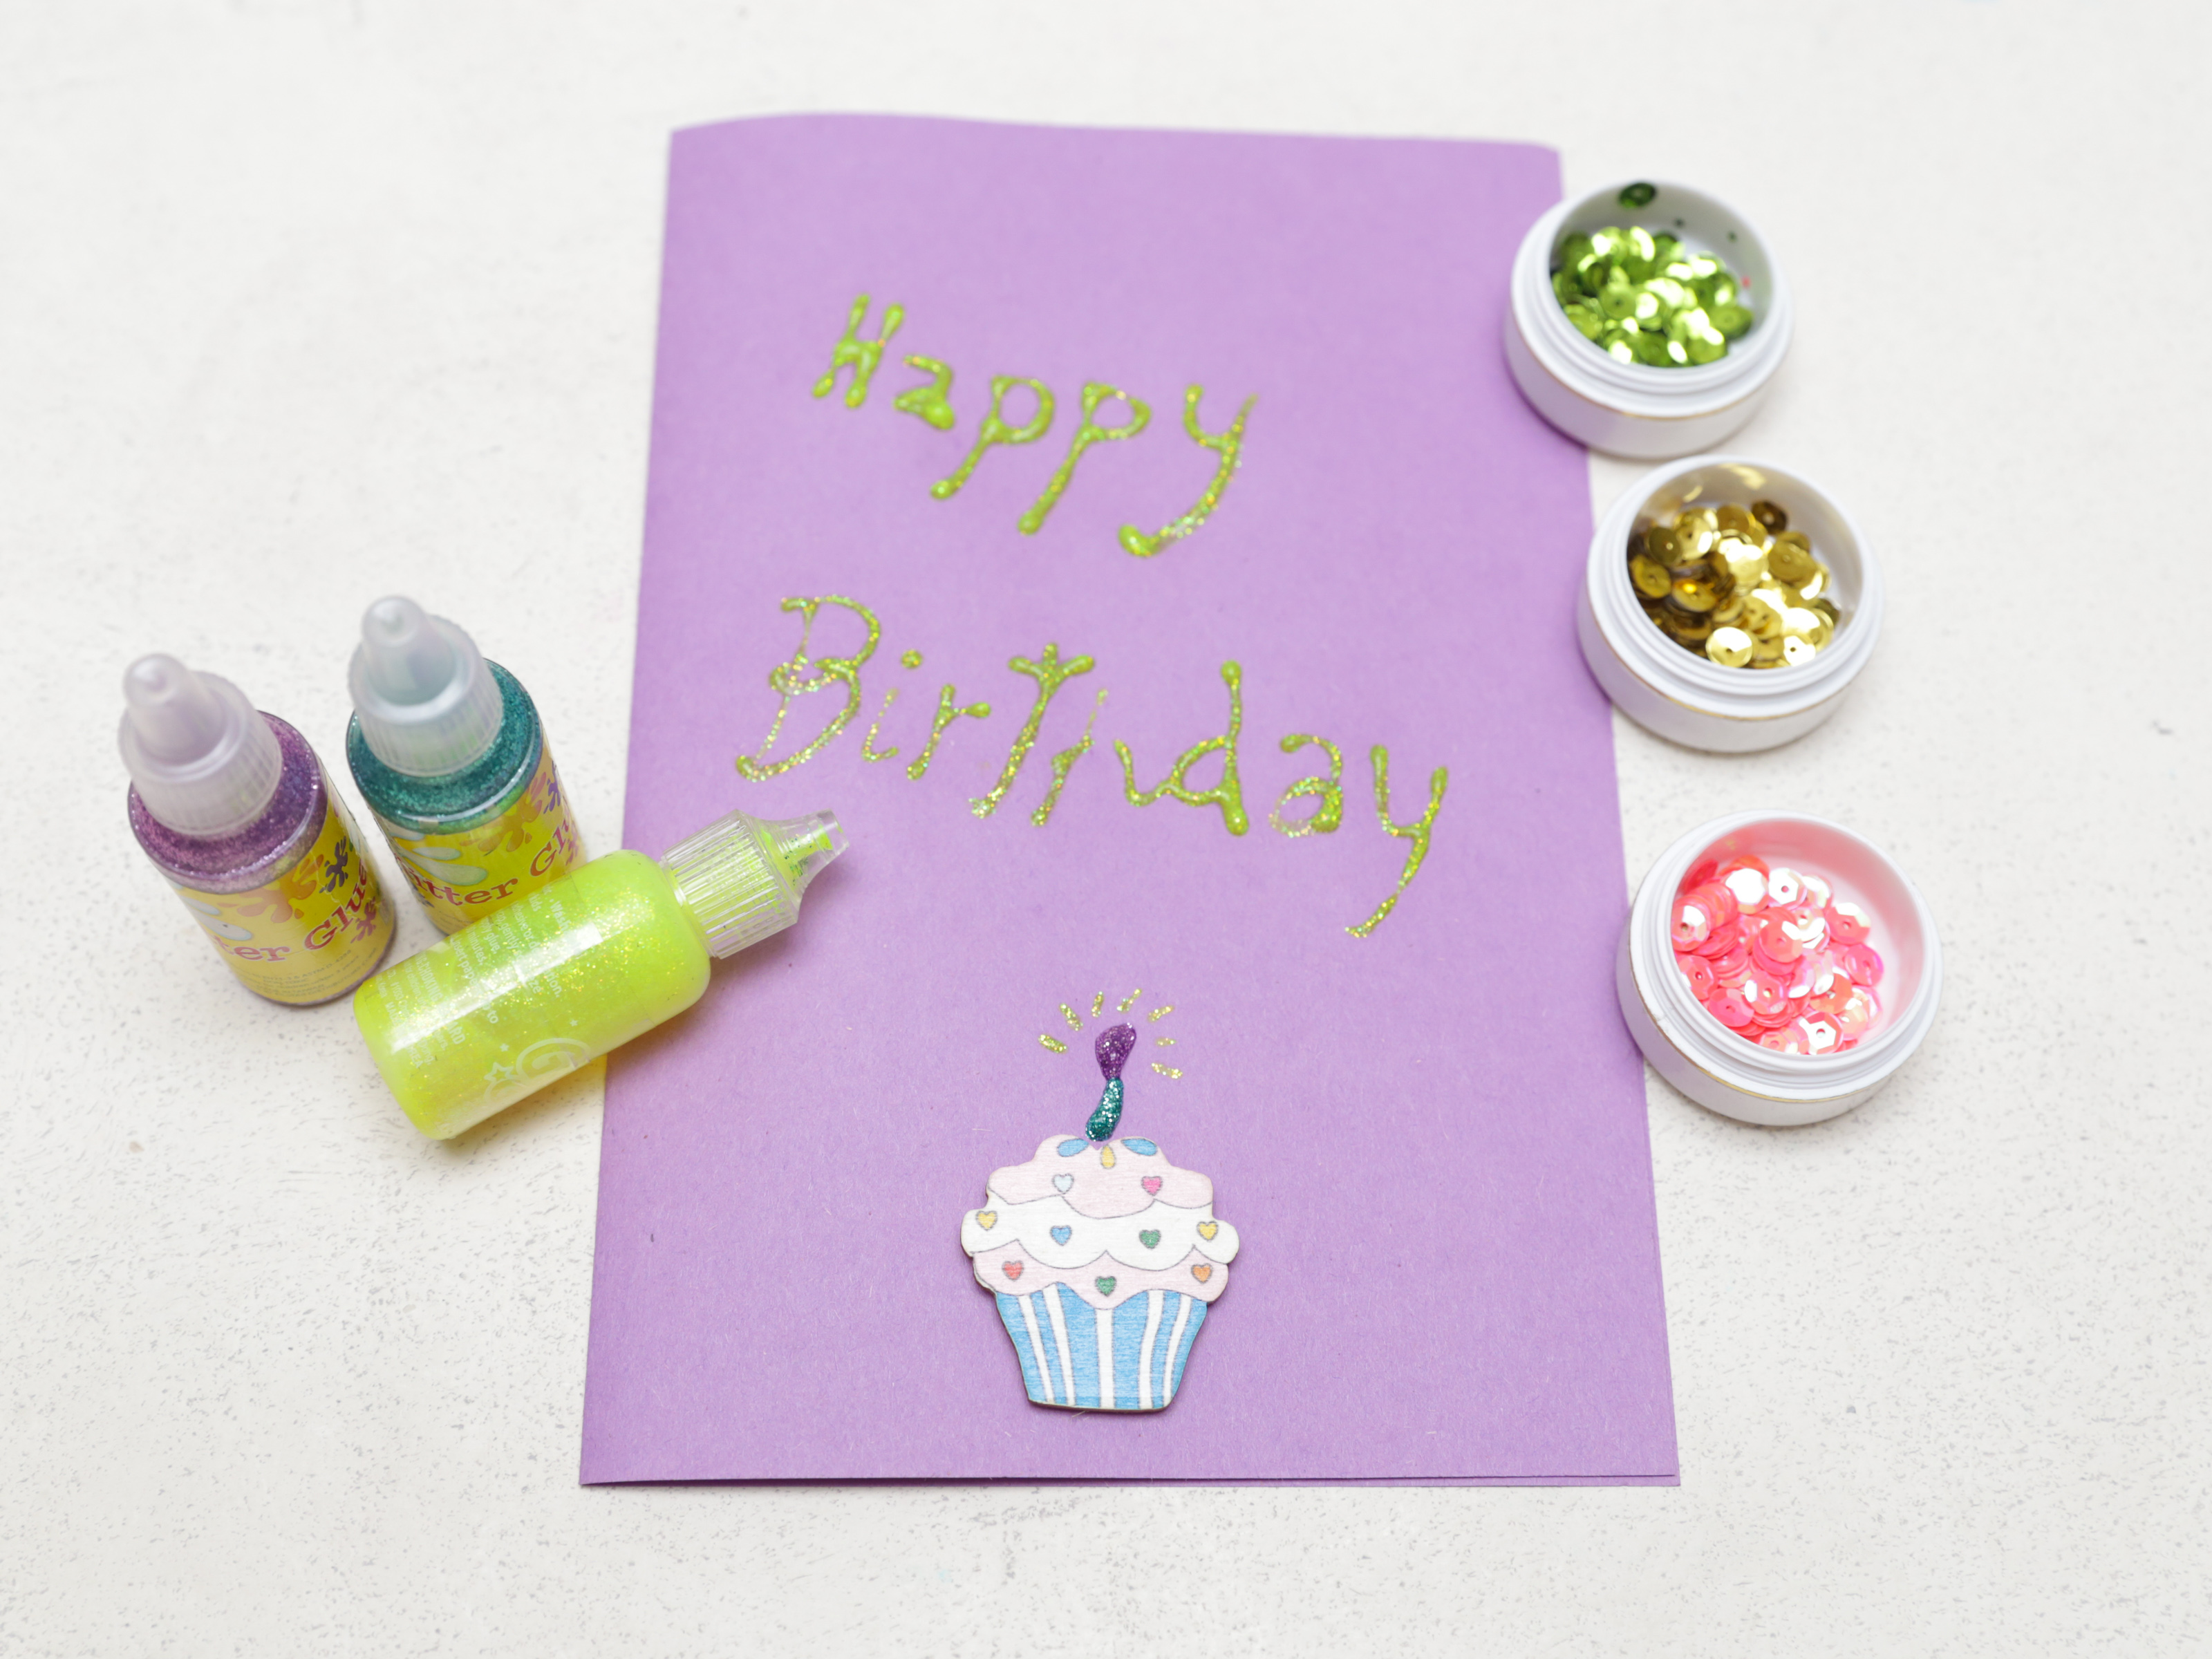 Image Of How To Make Greeting Cards For Birthday In Home Step By